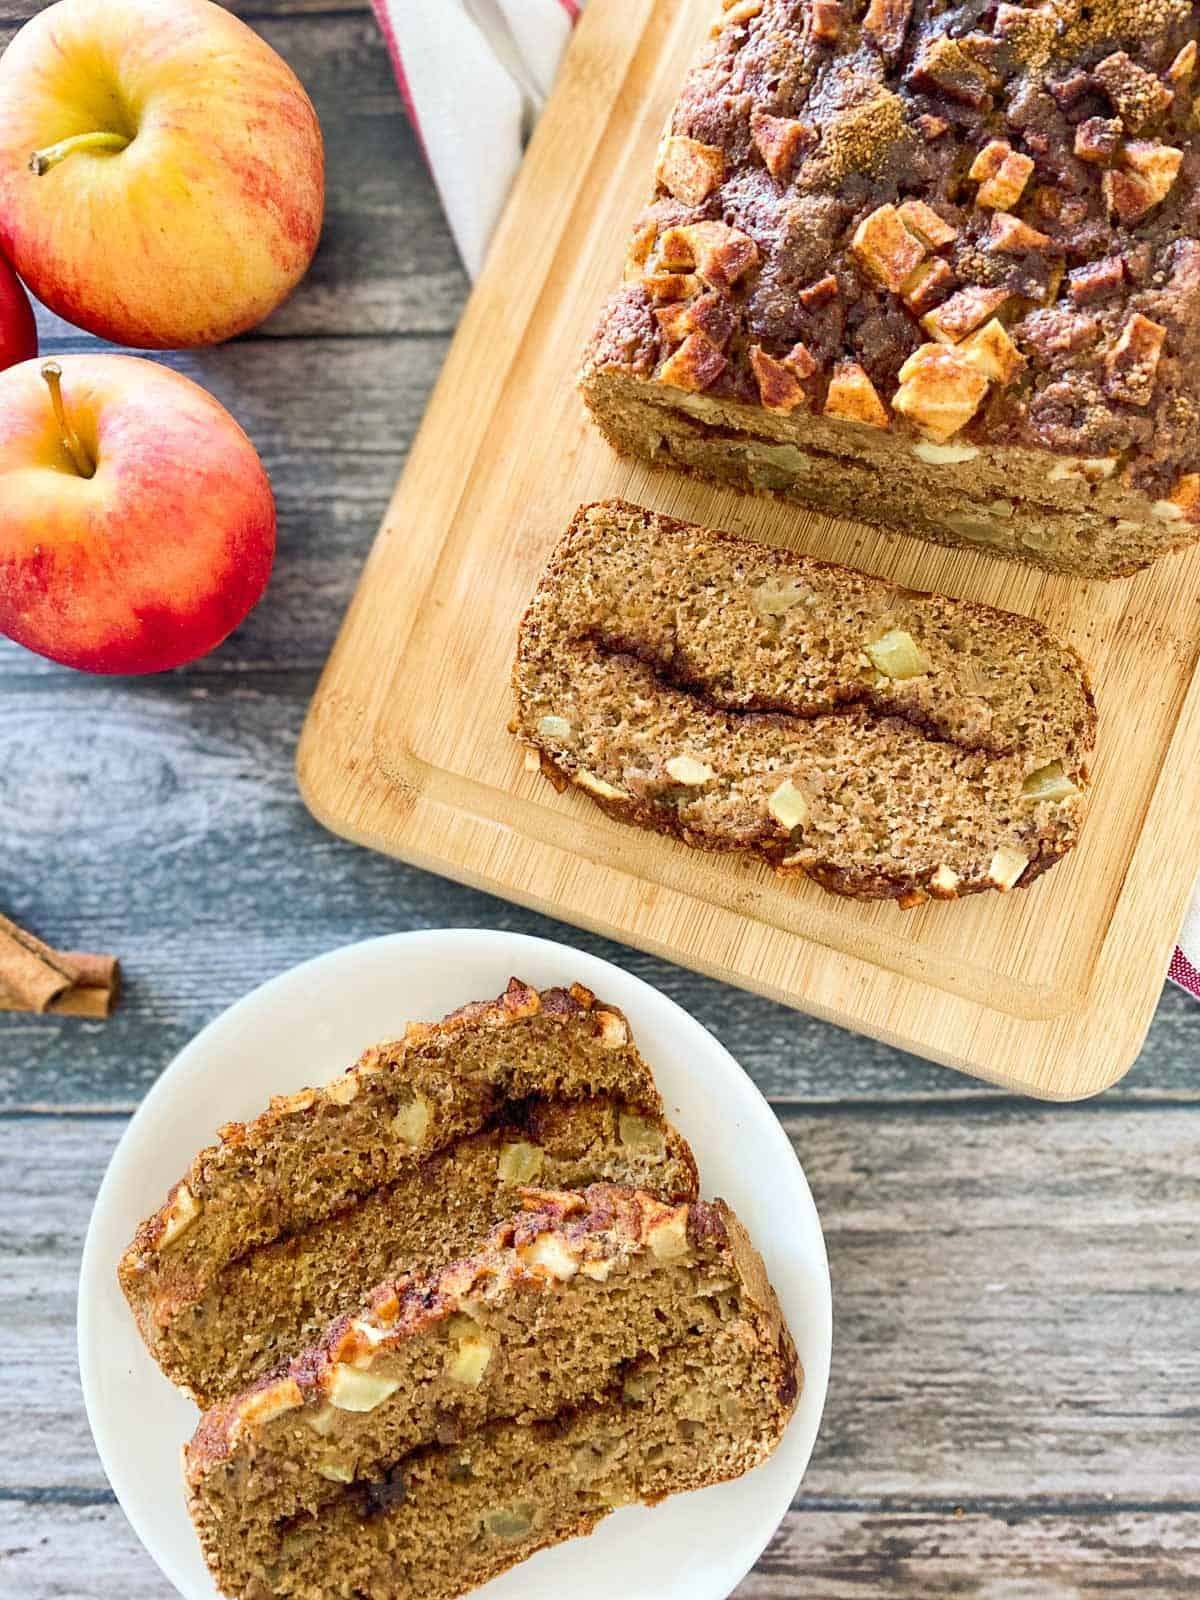 two slices of vegan apple bread on white plate with remaining loaf on cutting board and apples on the side.